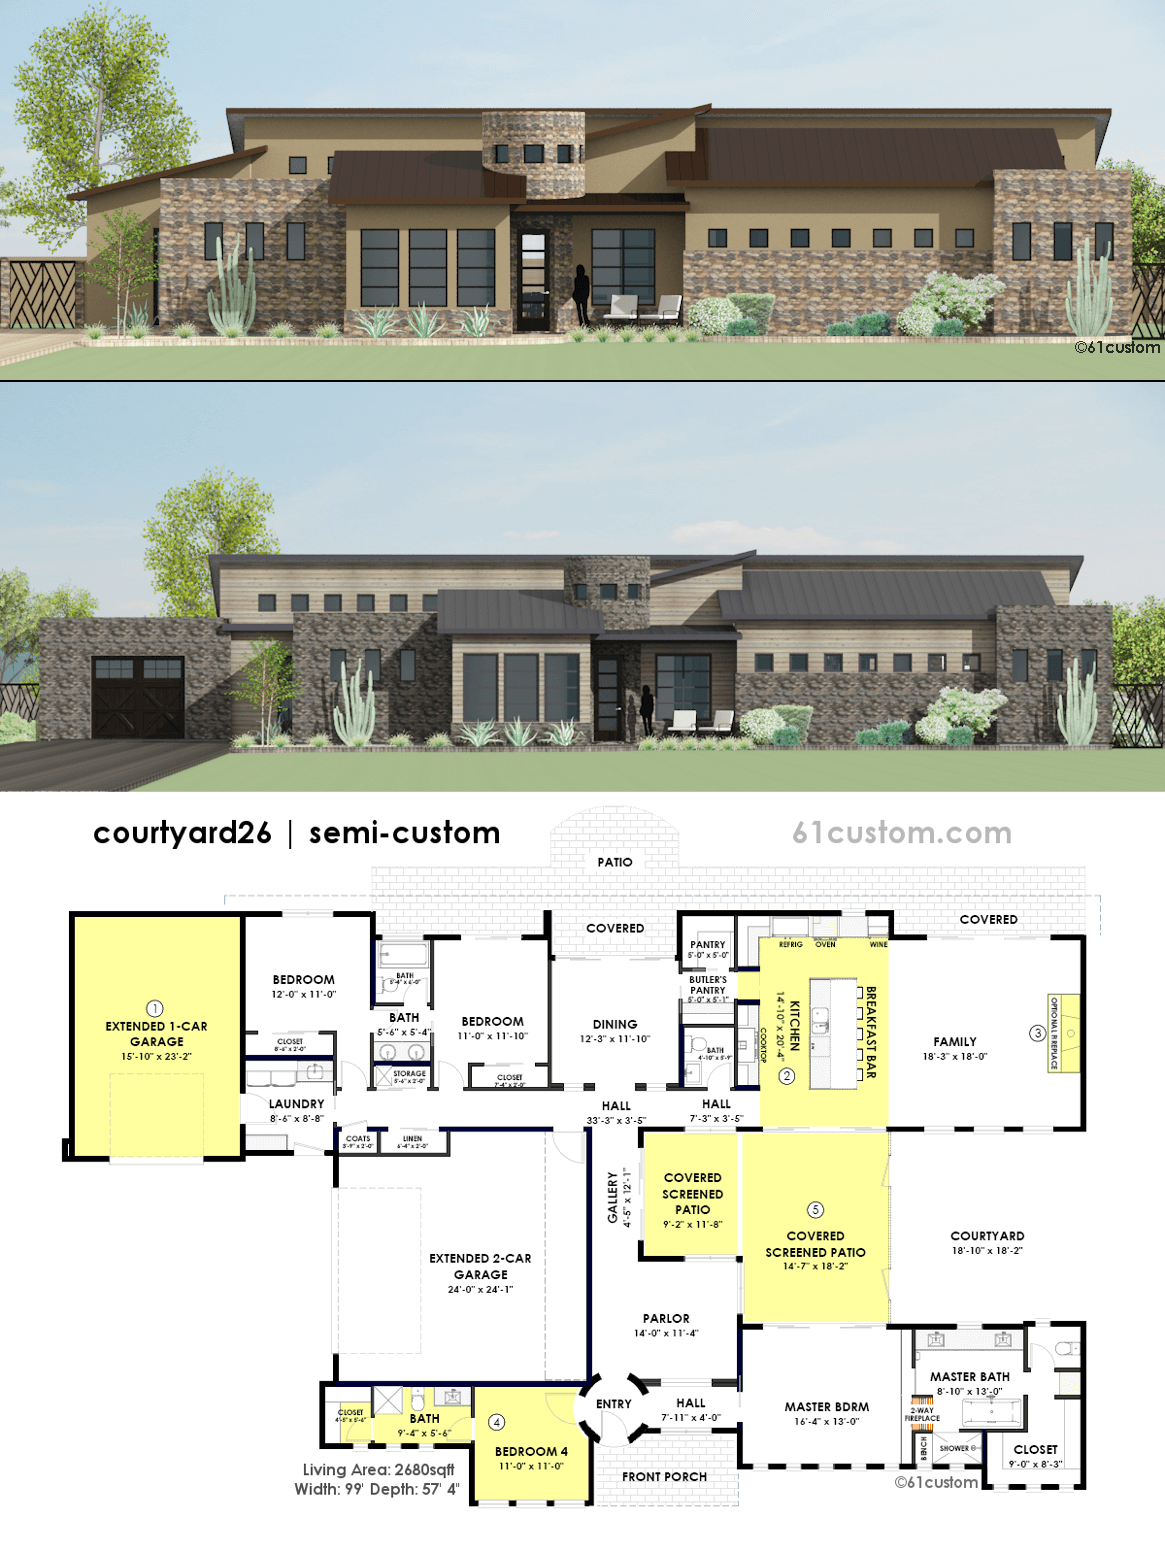 Contemporary side courtyard house plan 61custom for Custom house blueprints